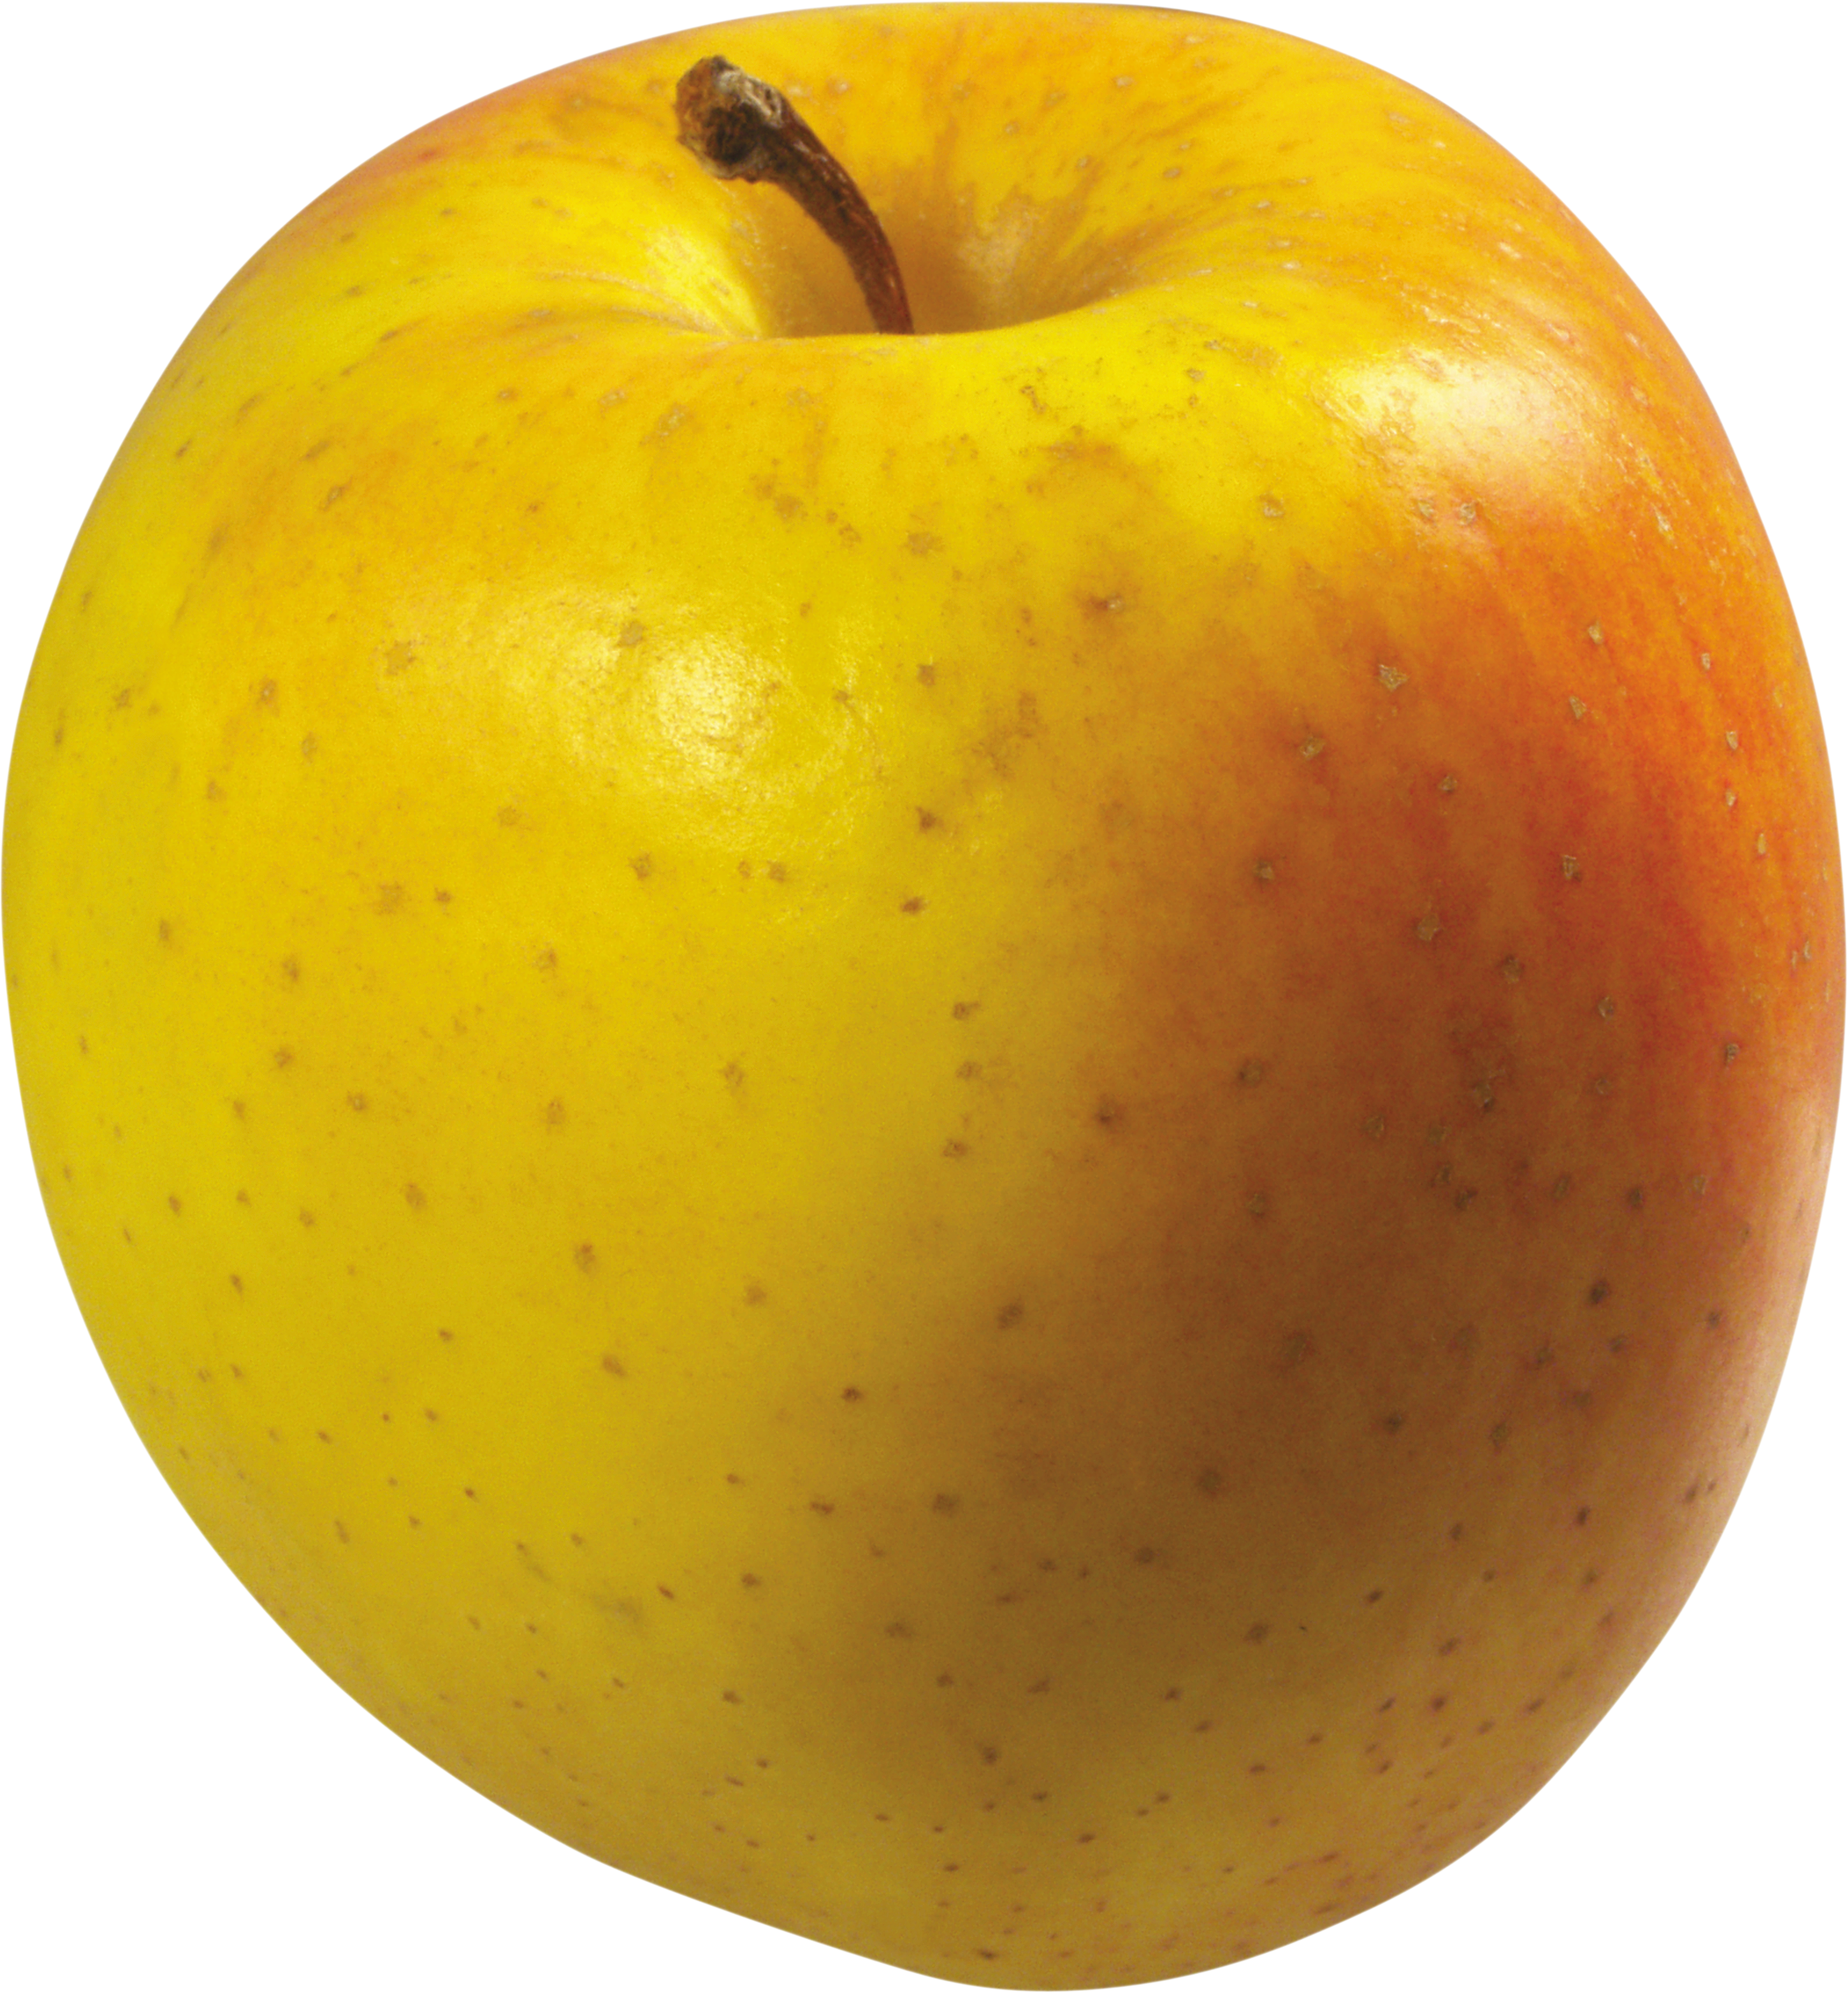 Pear clipart calabash. Yellow apple s png